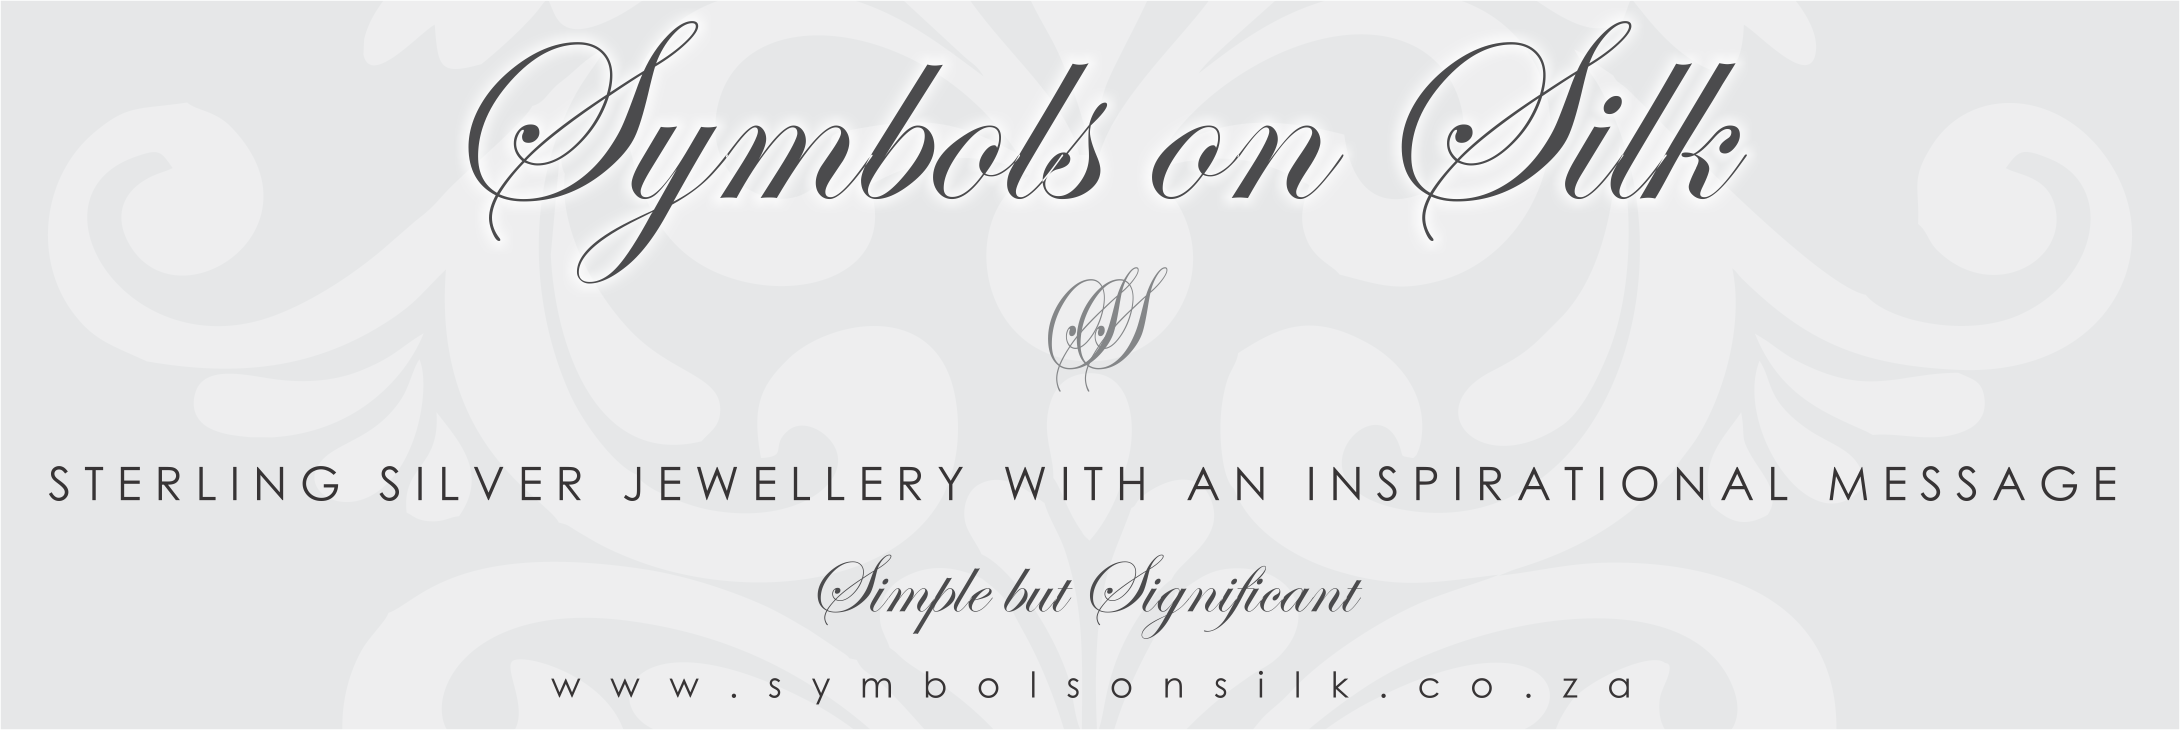 Symbols on silk email banner